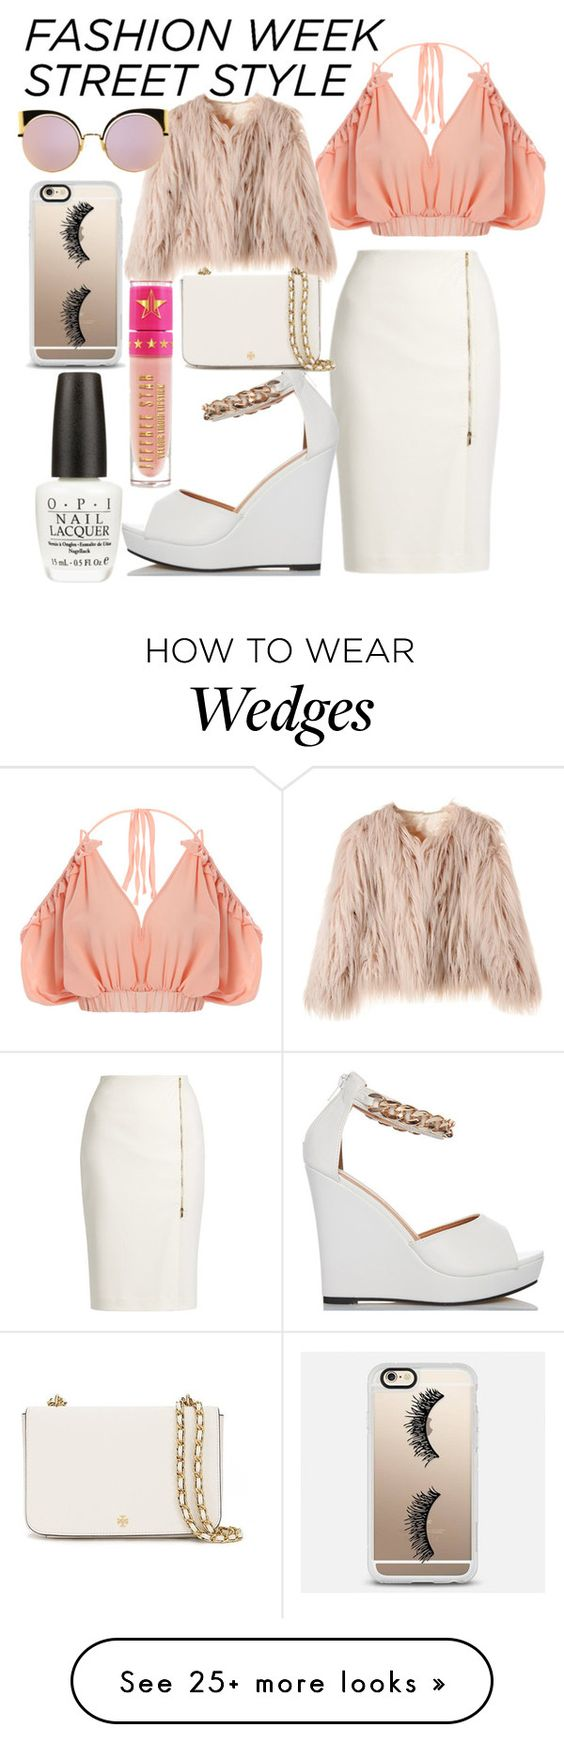 """#FUR #WHITE #SUBTLE"" by jana-jamieson on Polyvore featuring MaxMara, Tory Burch, Fendi, Casetify, Jeffree Star, OPI, StreetStyle and NYFW"